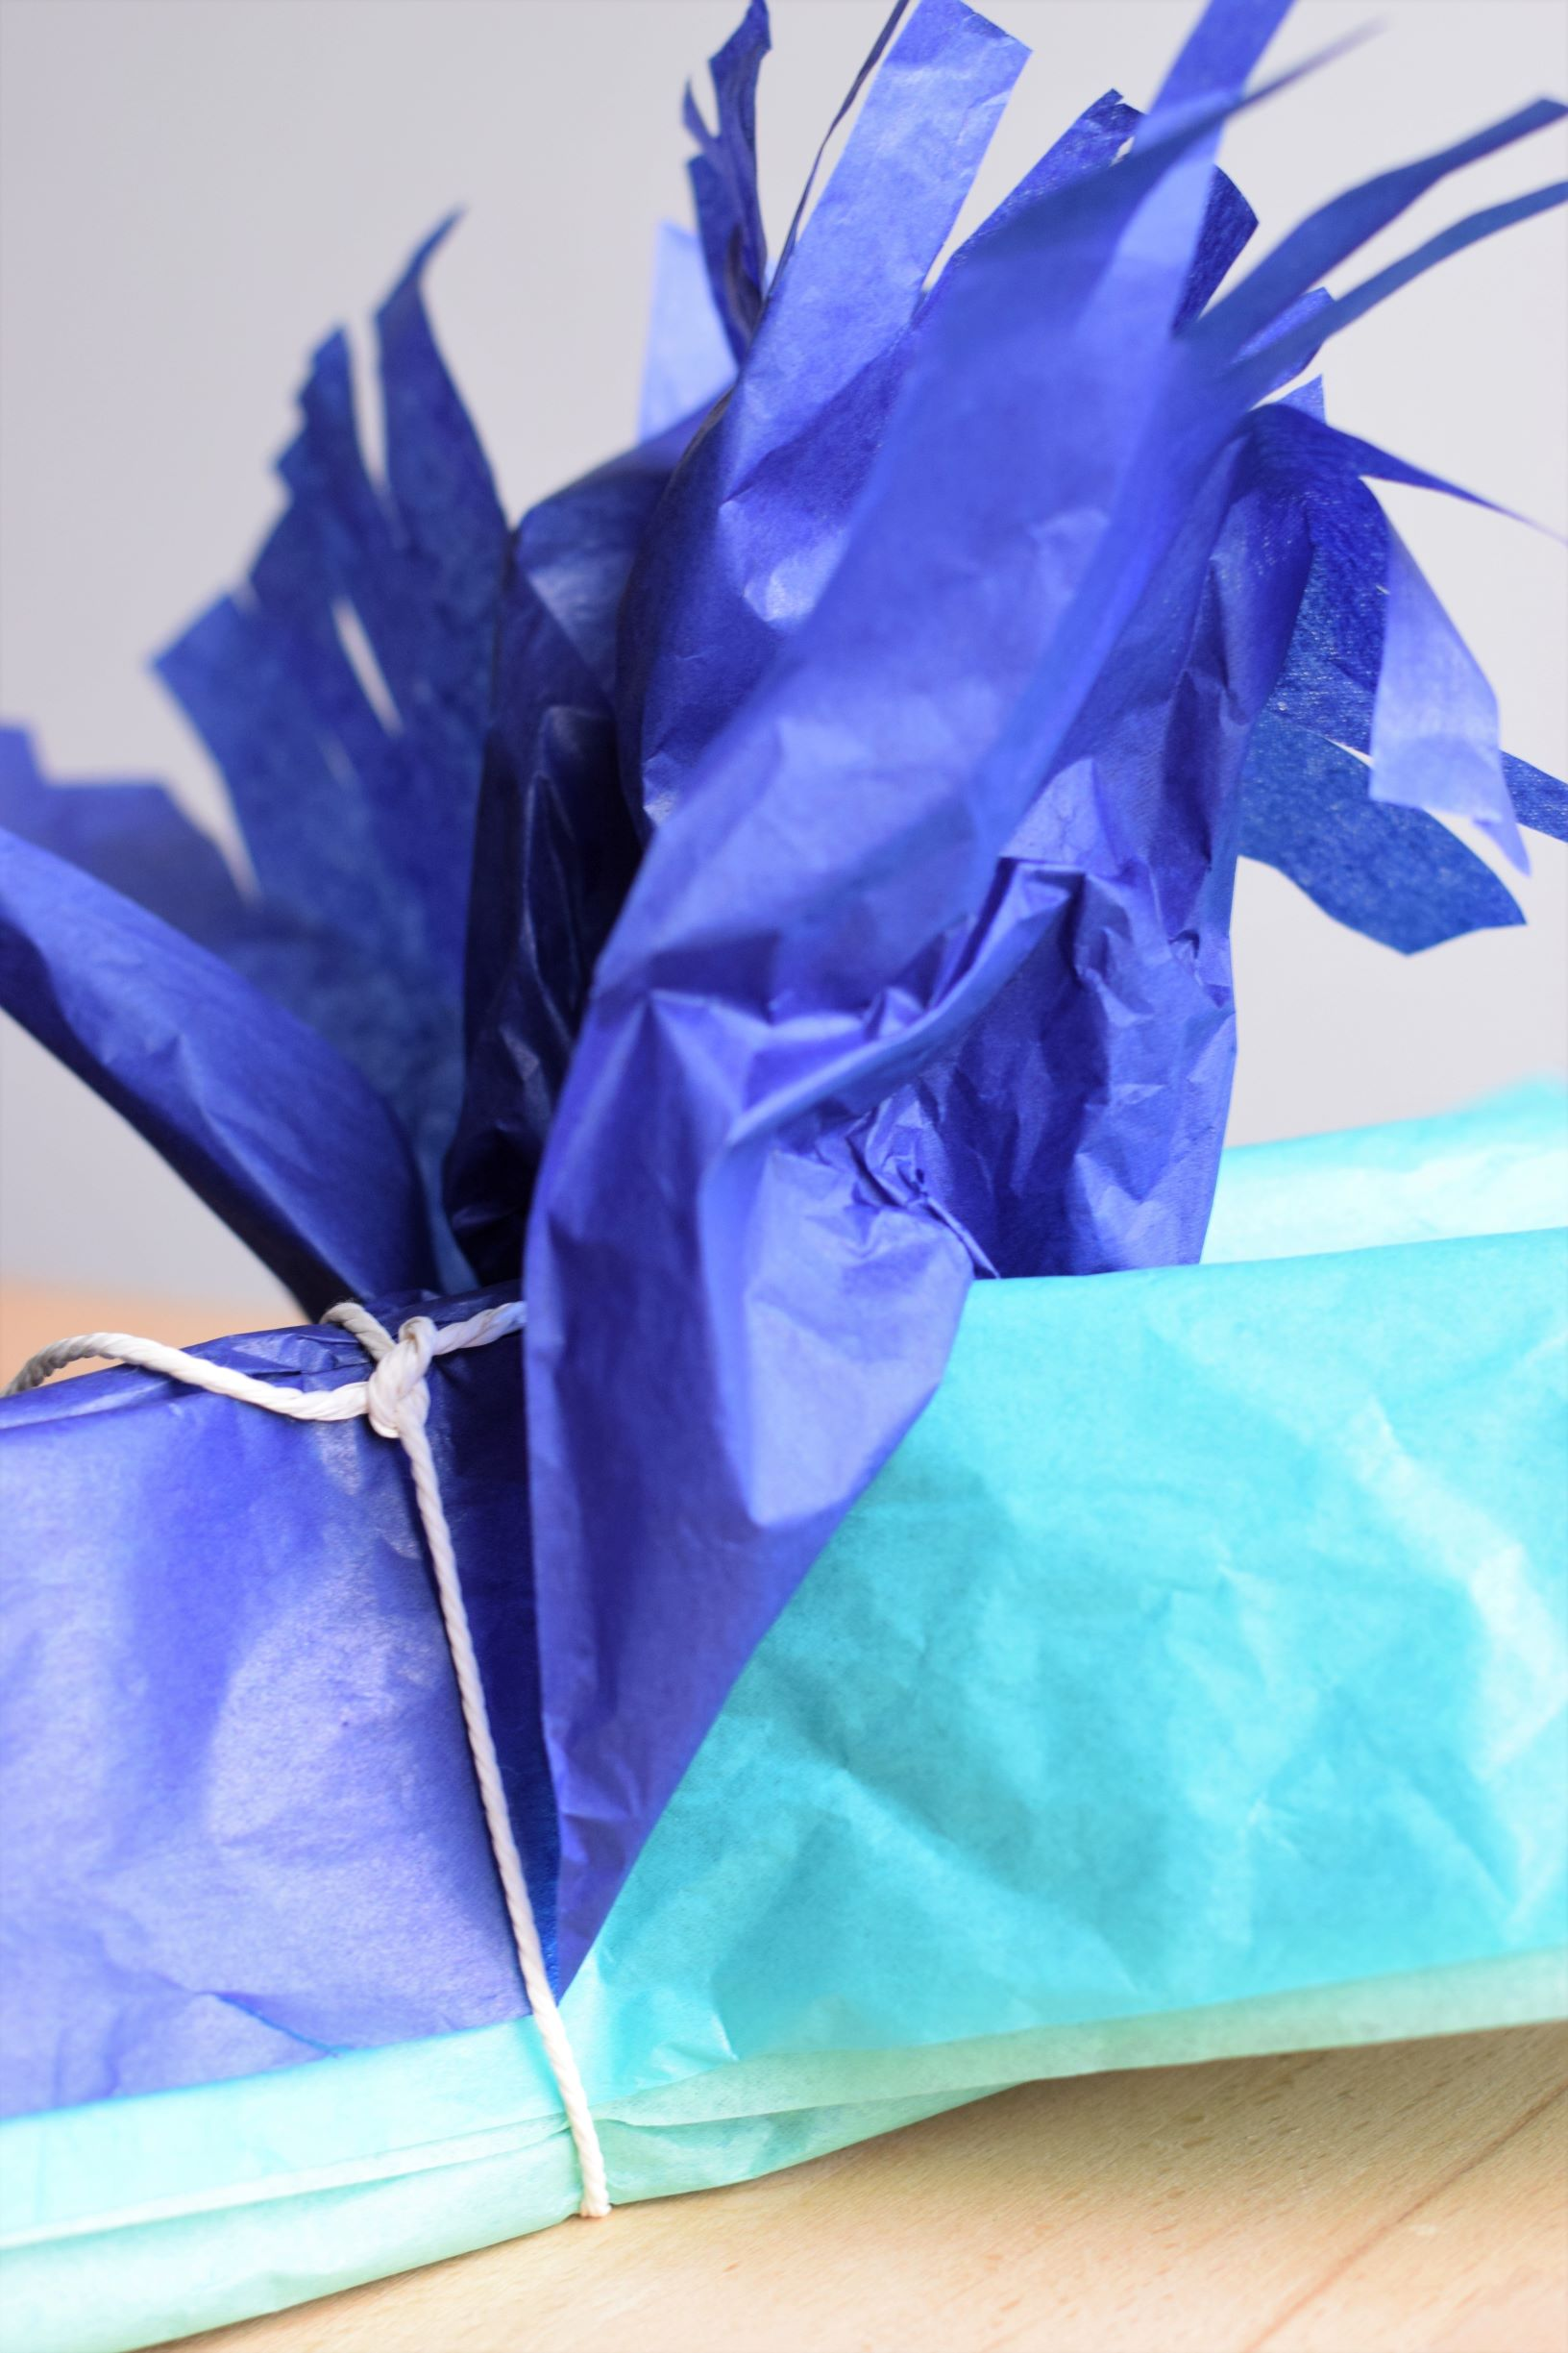 Making pom poms with tissue paper